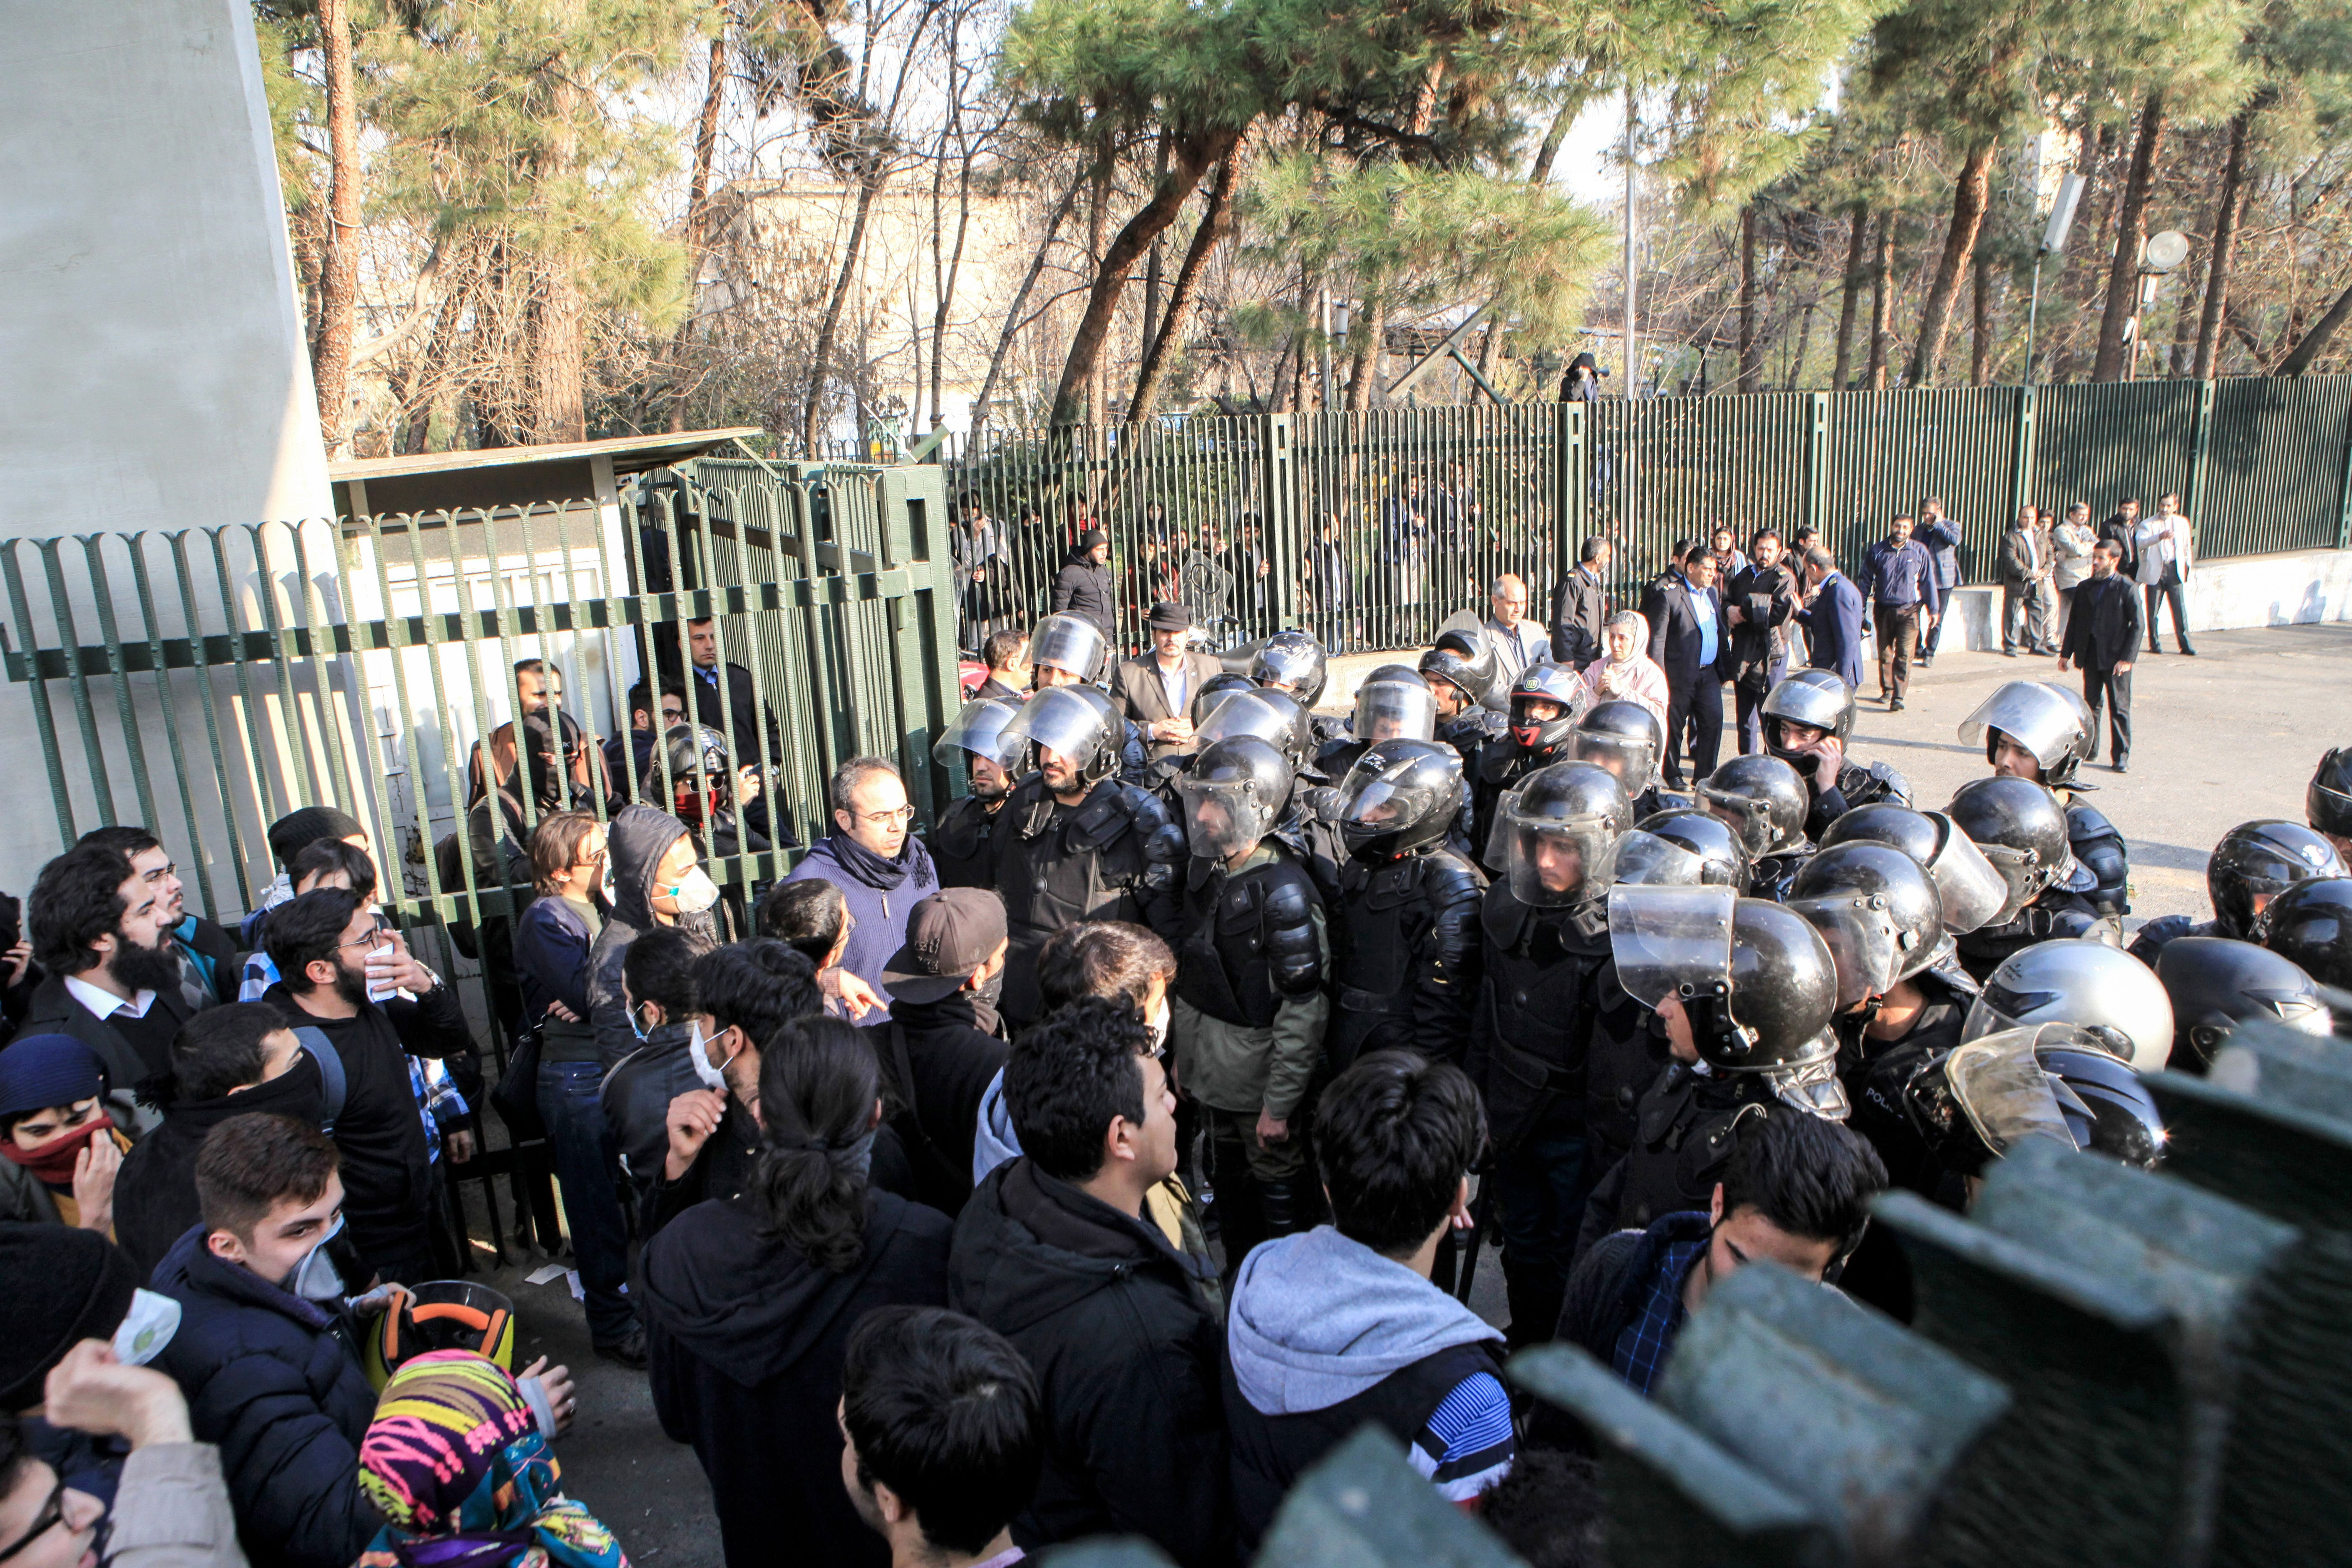 Students and police face off at the University of Tehran during a demonstration in Iran's capital Tehran on Dec. 30 2017